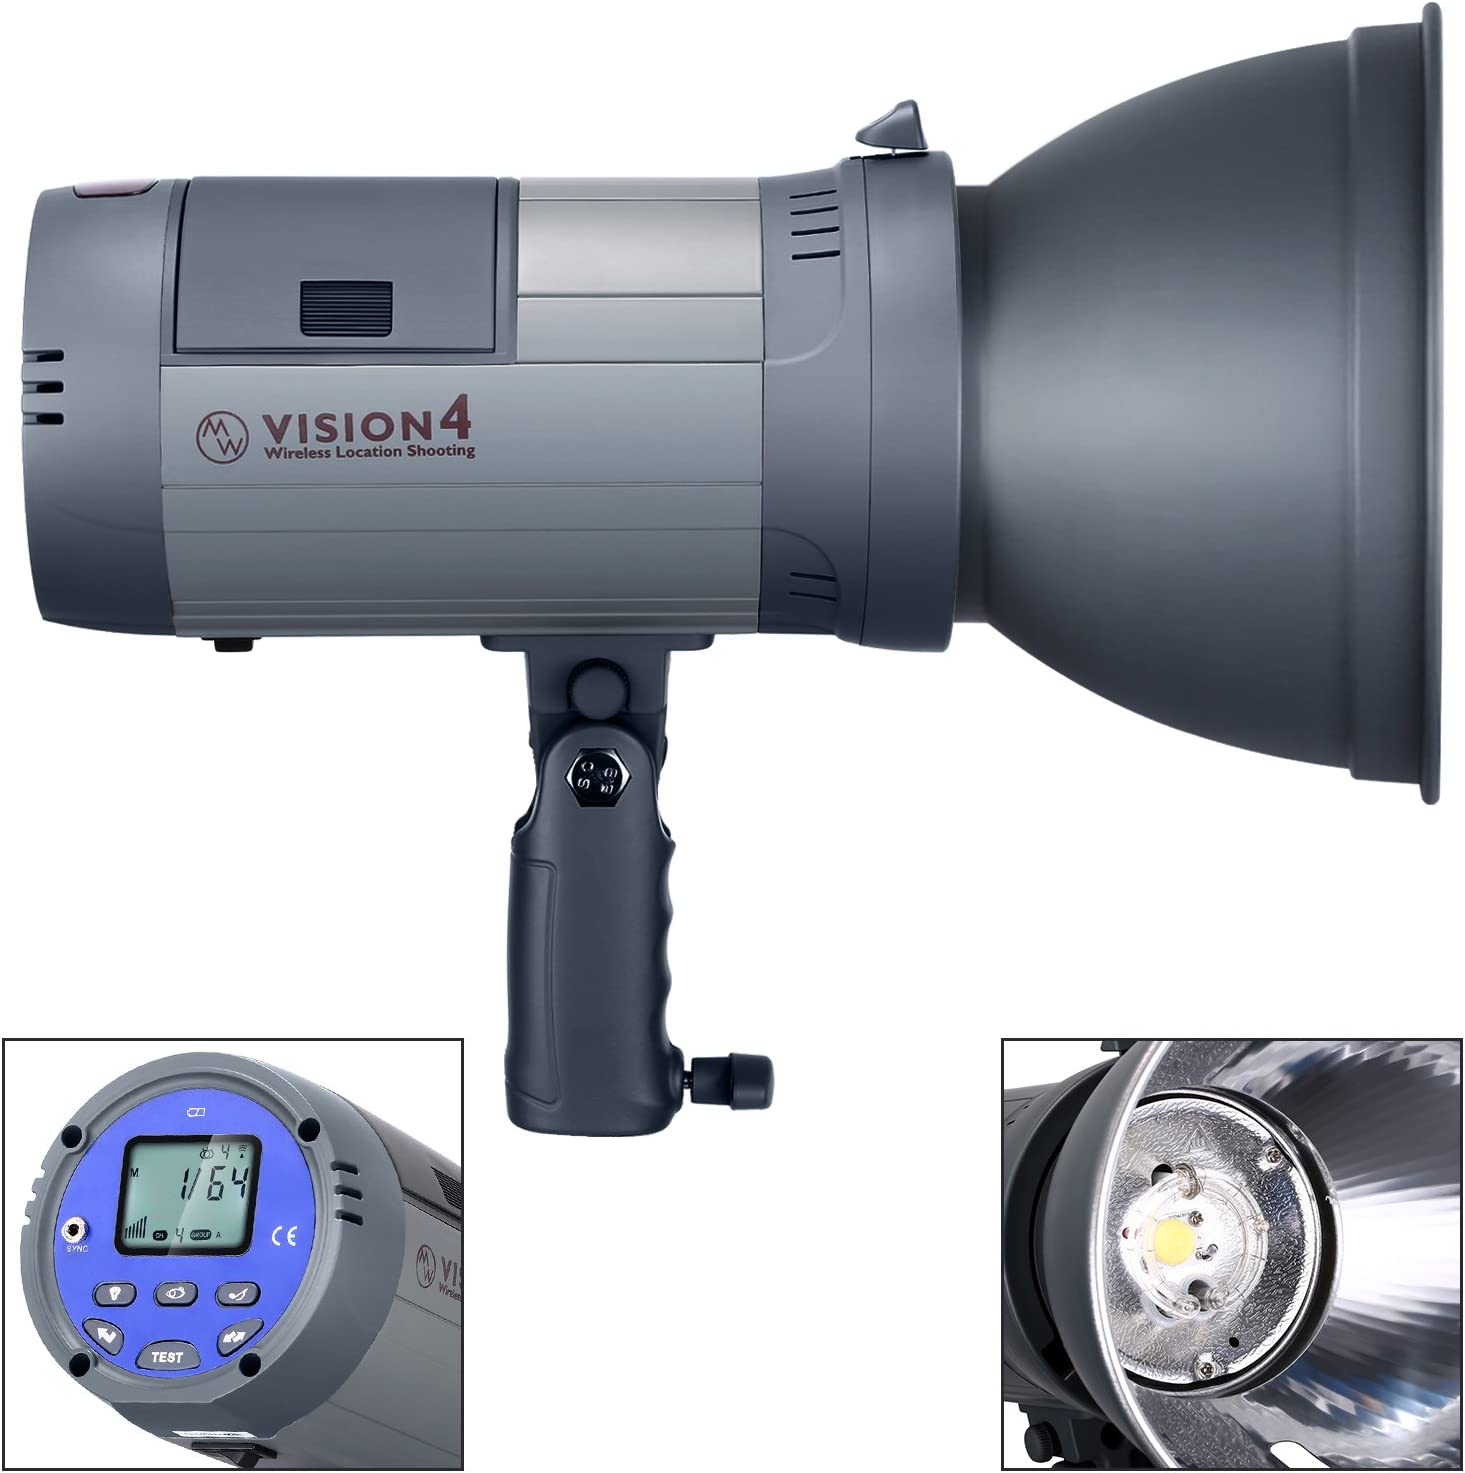 Trigger included Bowens Mount 3.96 Pounds with White Umbrella and 60x90cm Softbox 700 Full Power Flashes with 2.4G System Li-ion Battery Powered Neewer Vision 4 Outdoor Studio Flash Strobe Kit